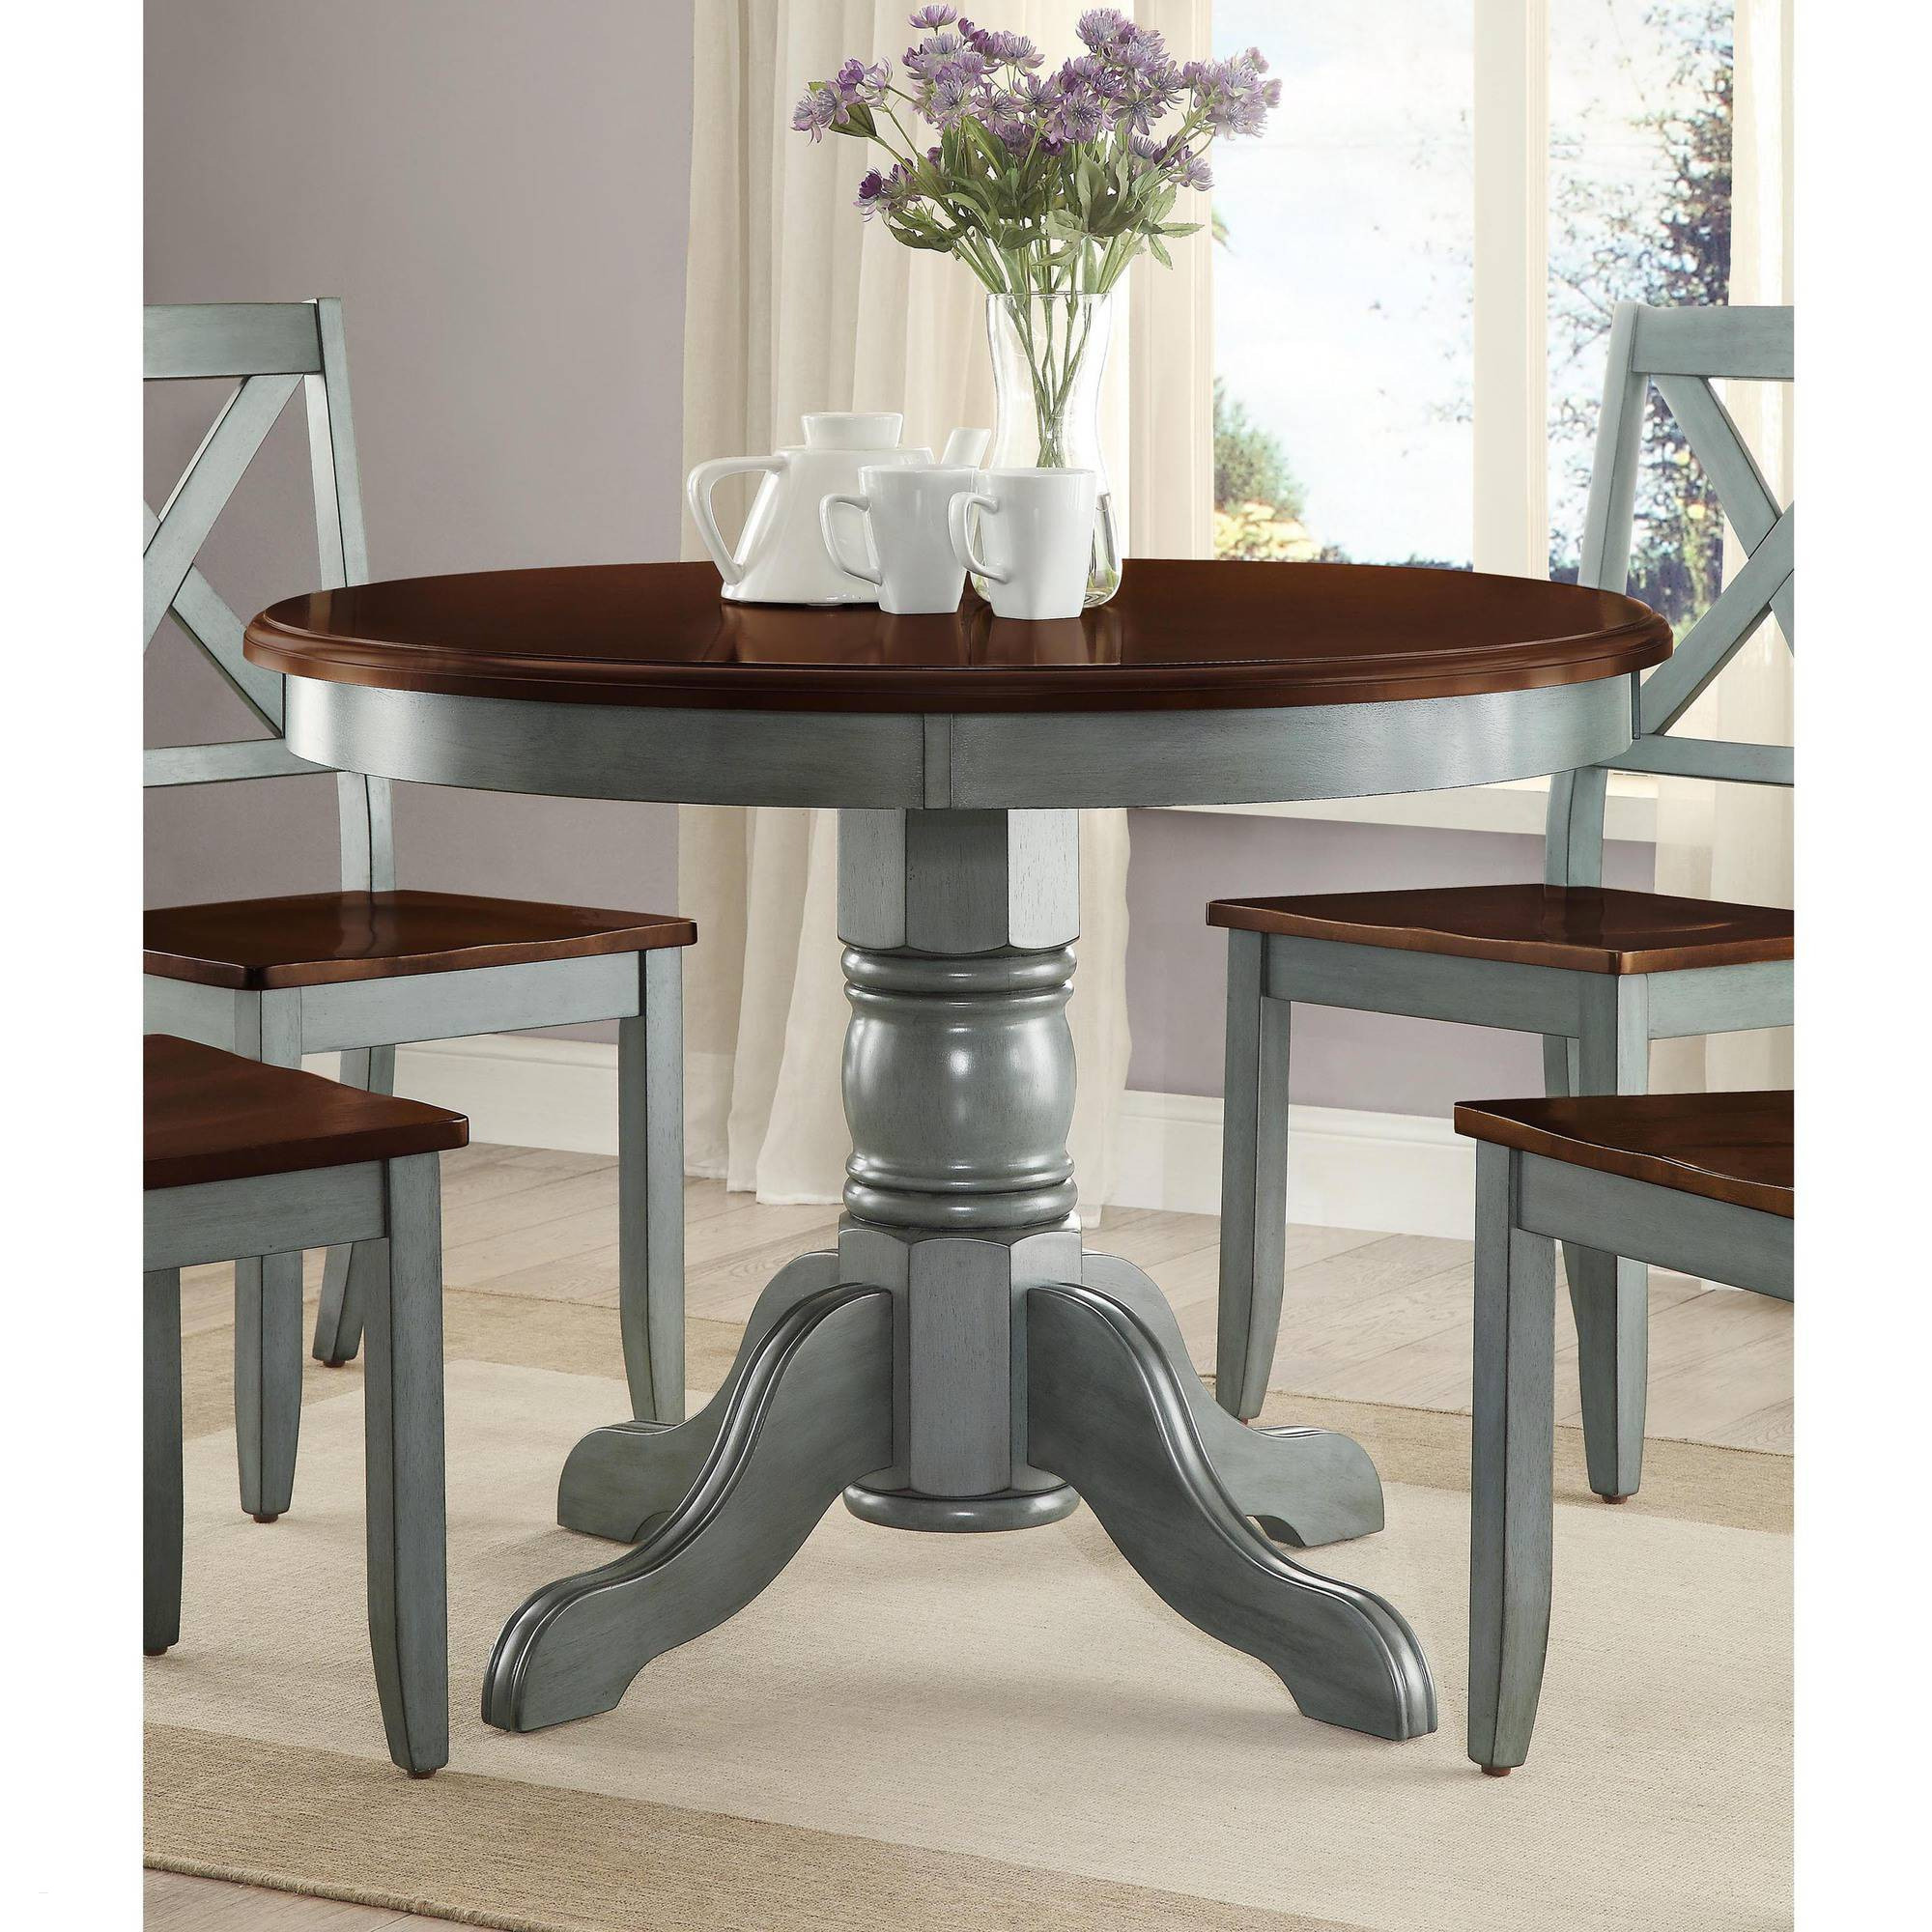 walmart clear glass vases of 14 walmart coffee and end table sets images coffee tables ideas regarding walmart coffee and end table sets collection walmart round dining table set gallery als